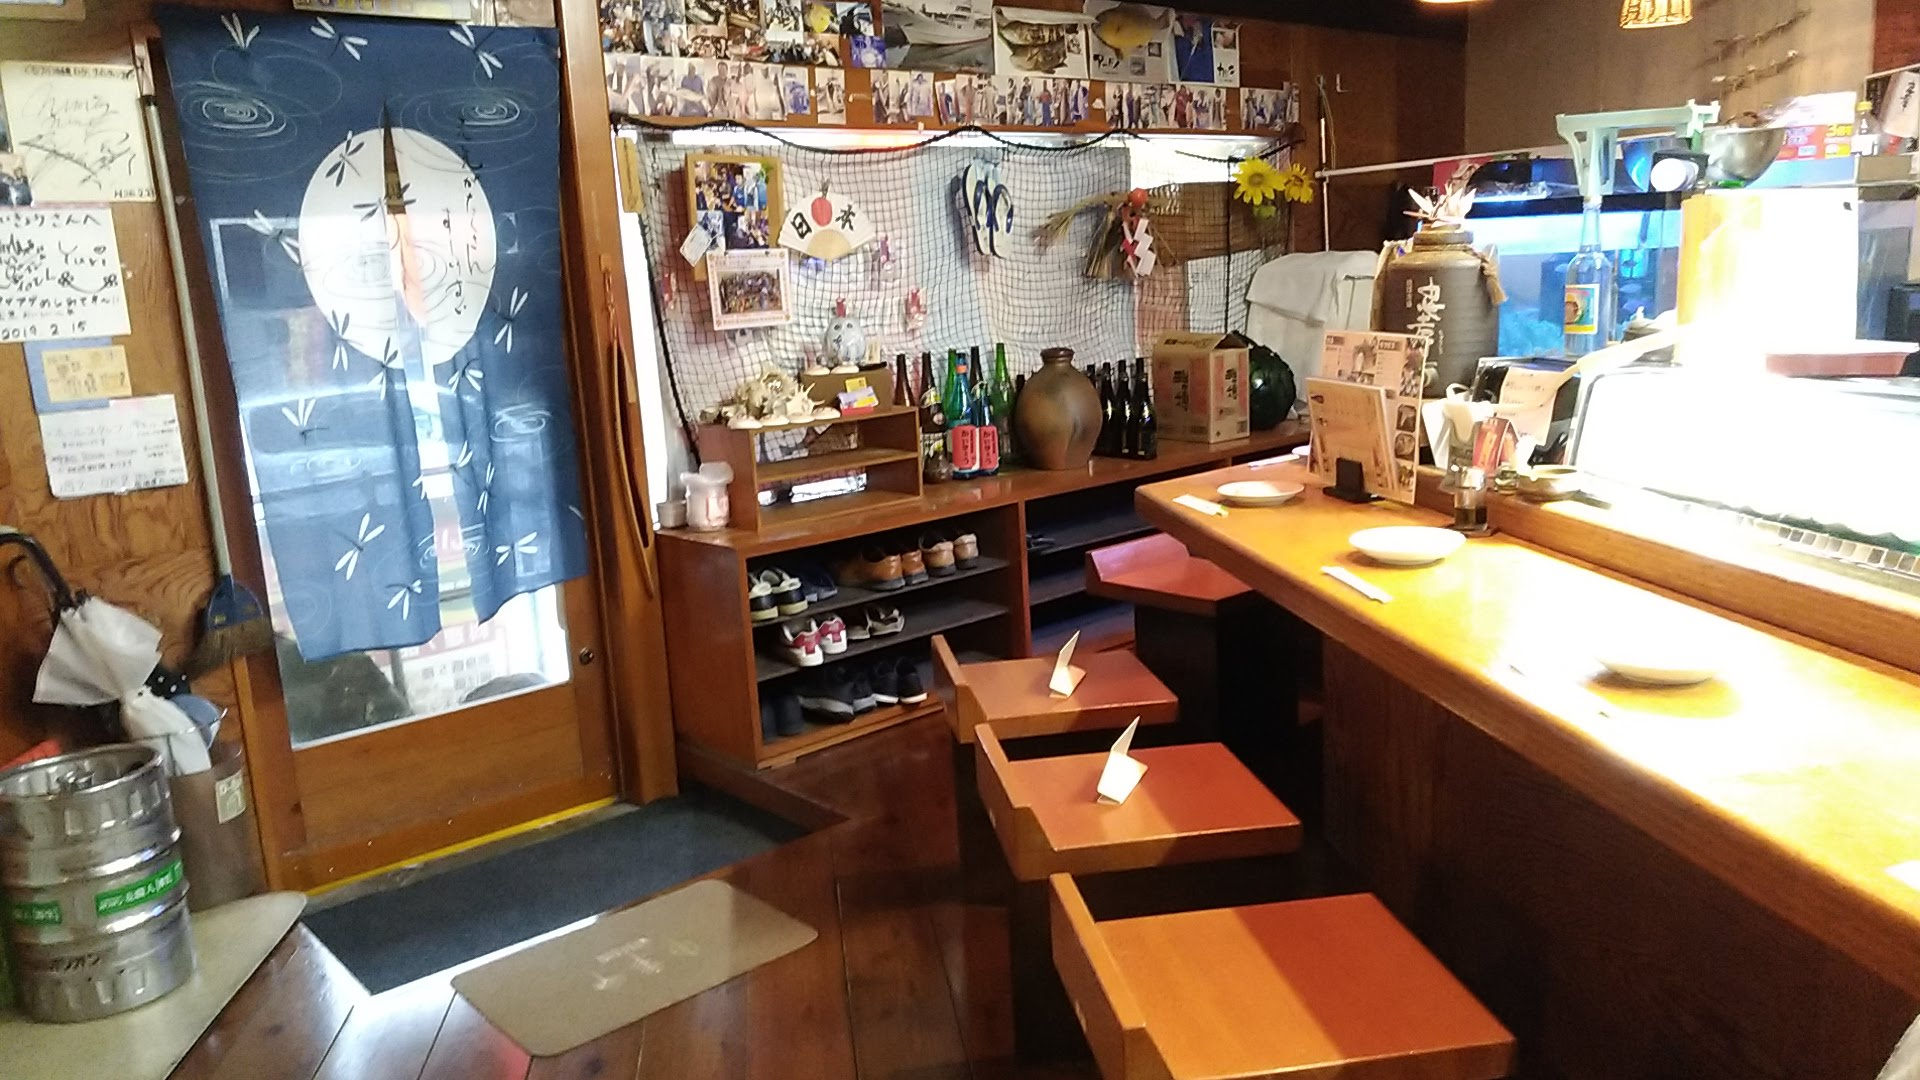 The seafood tavern Kaikyo interior 1